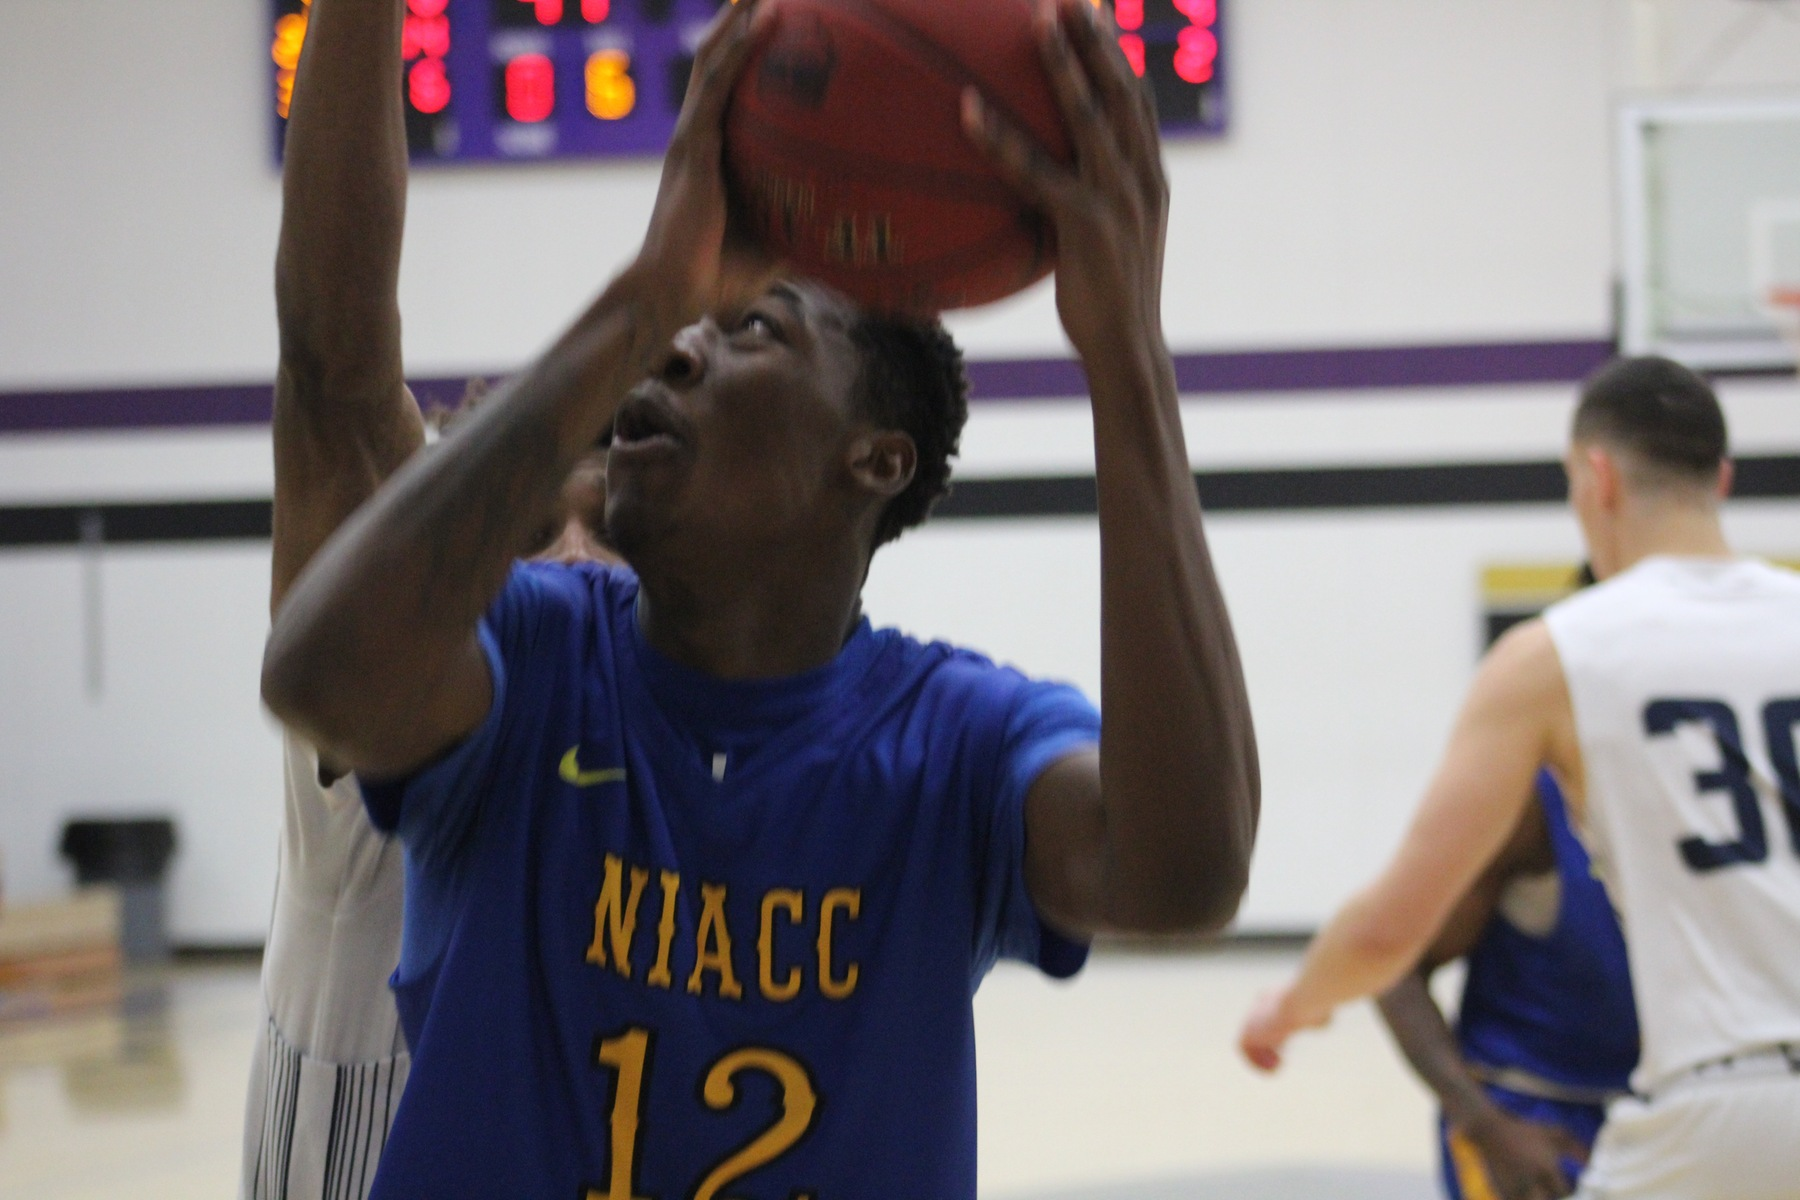 NIACC's Wendell Matthews takes the ball to the basket in Friday's game against Marshalltown CC.